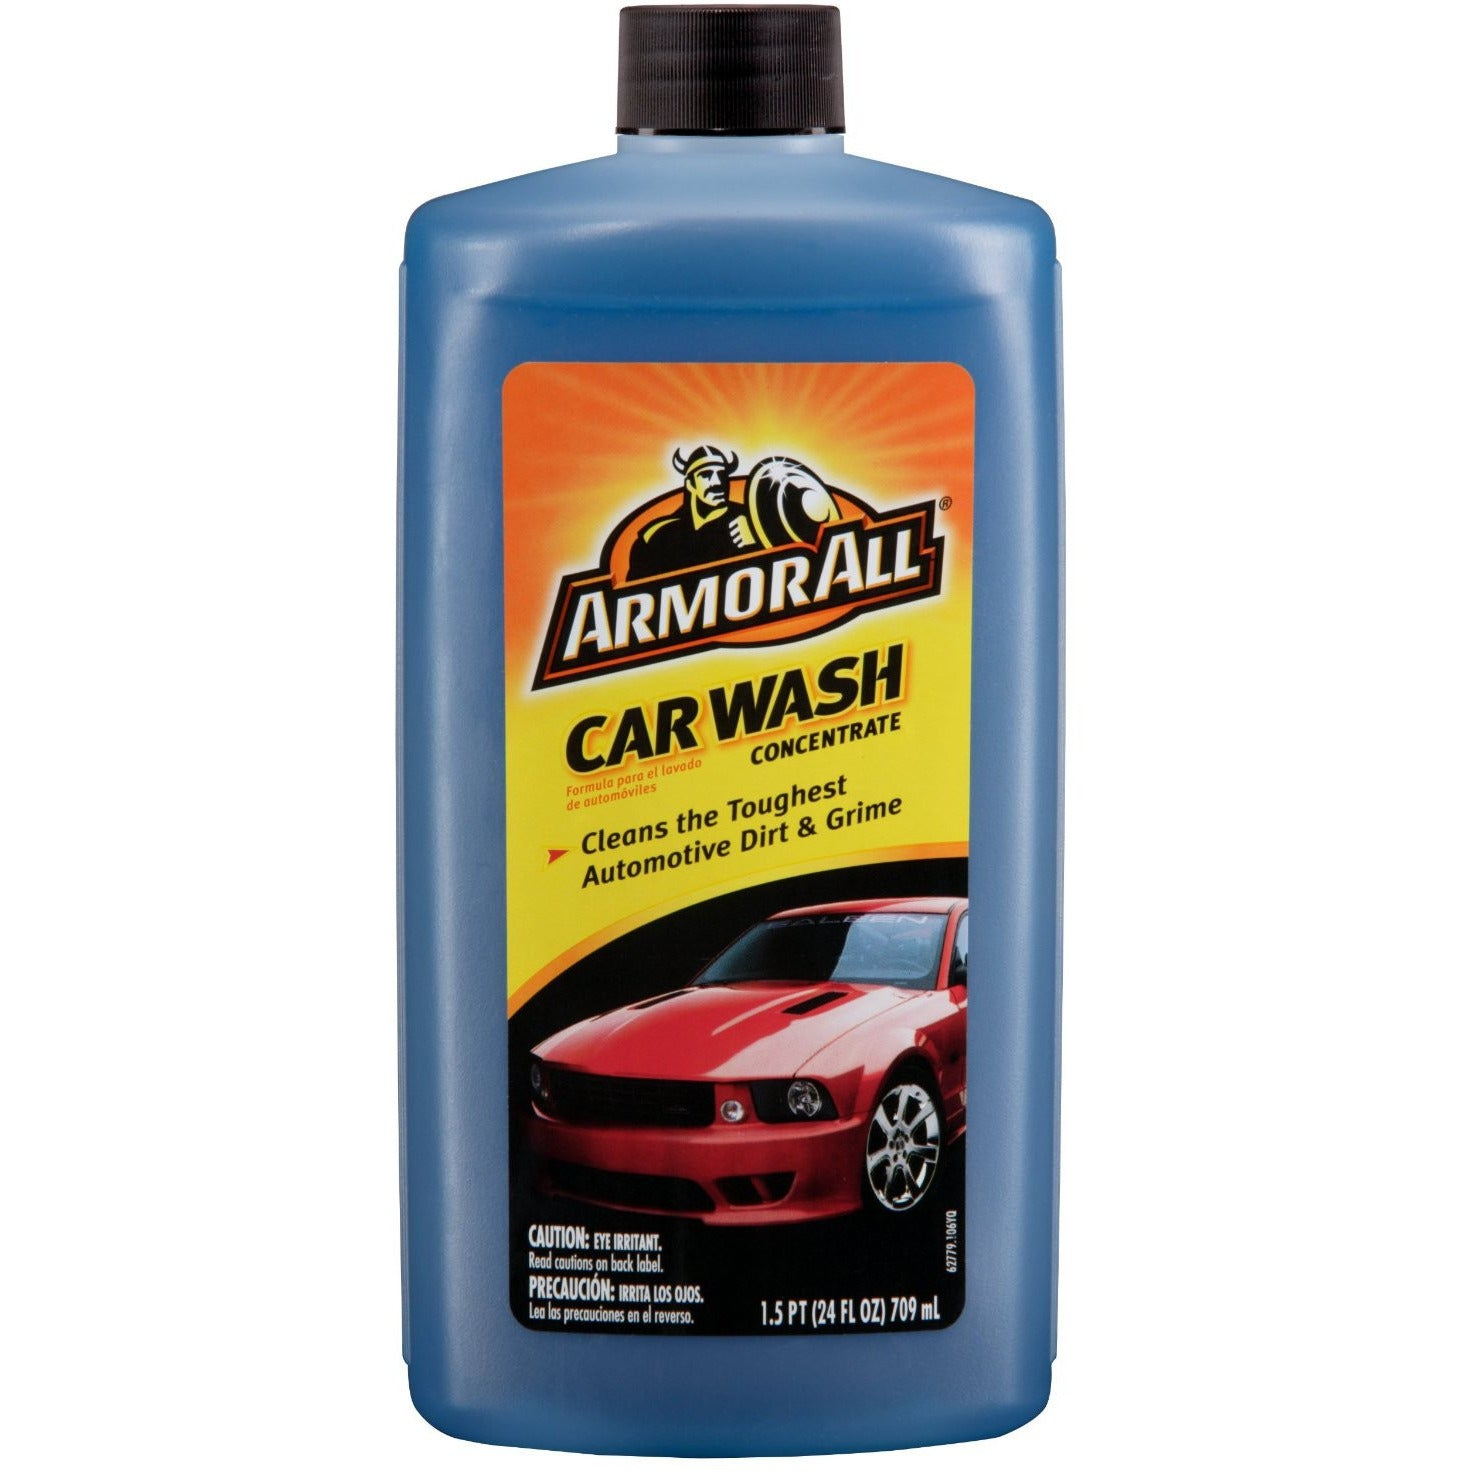 ARMOR ALL CAR WASH - (24 oz./709ml)